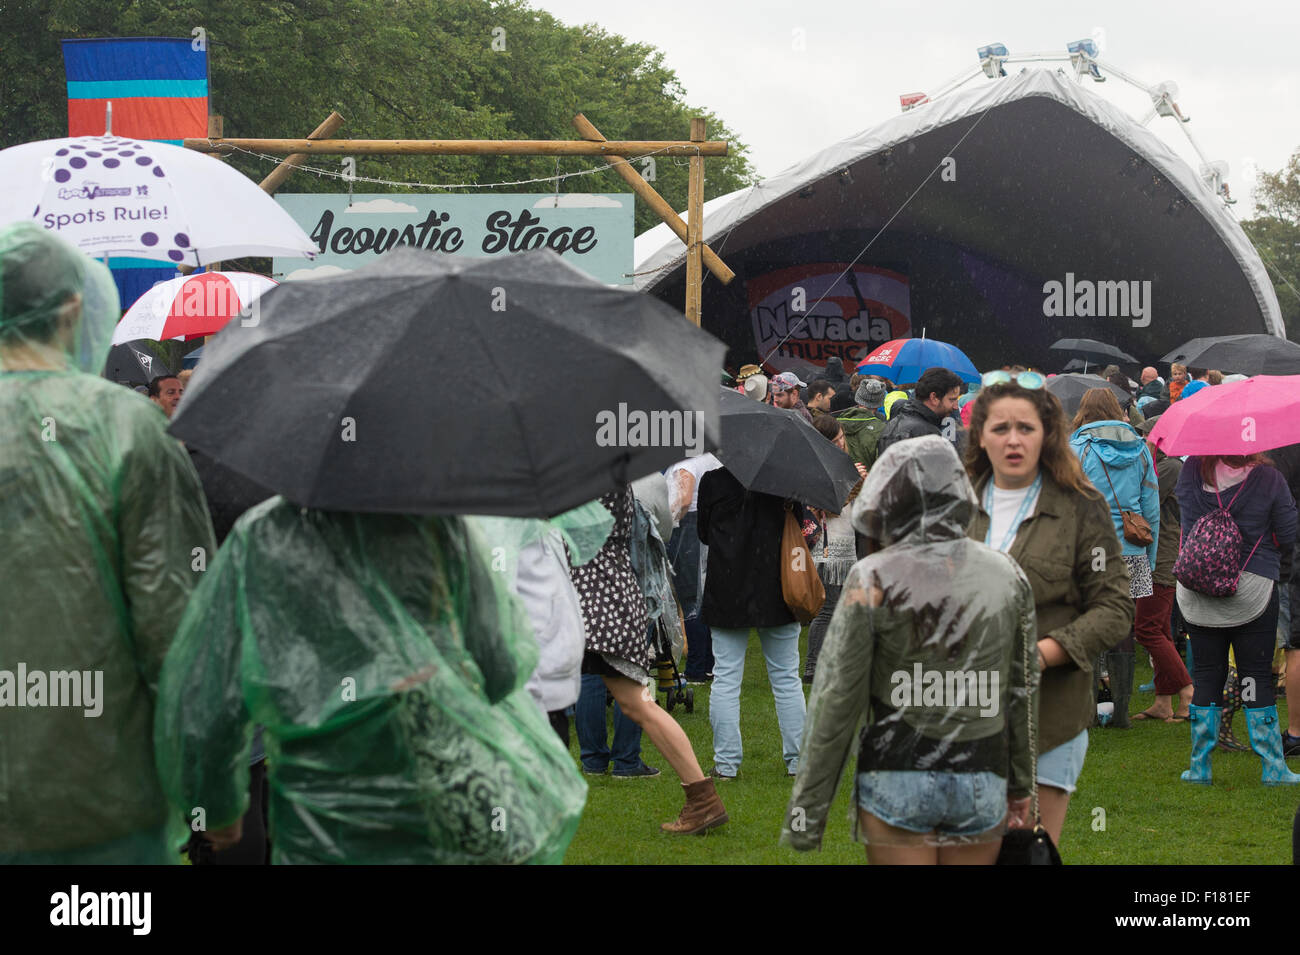 Portsmouth, UK. 29th August 2015. Victorious Festival - Saturday. A good crowd gathers at the Acoustic Stage complete - Stock Image